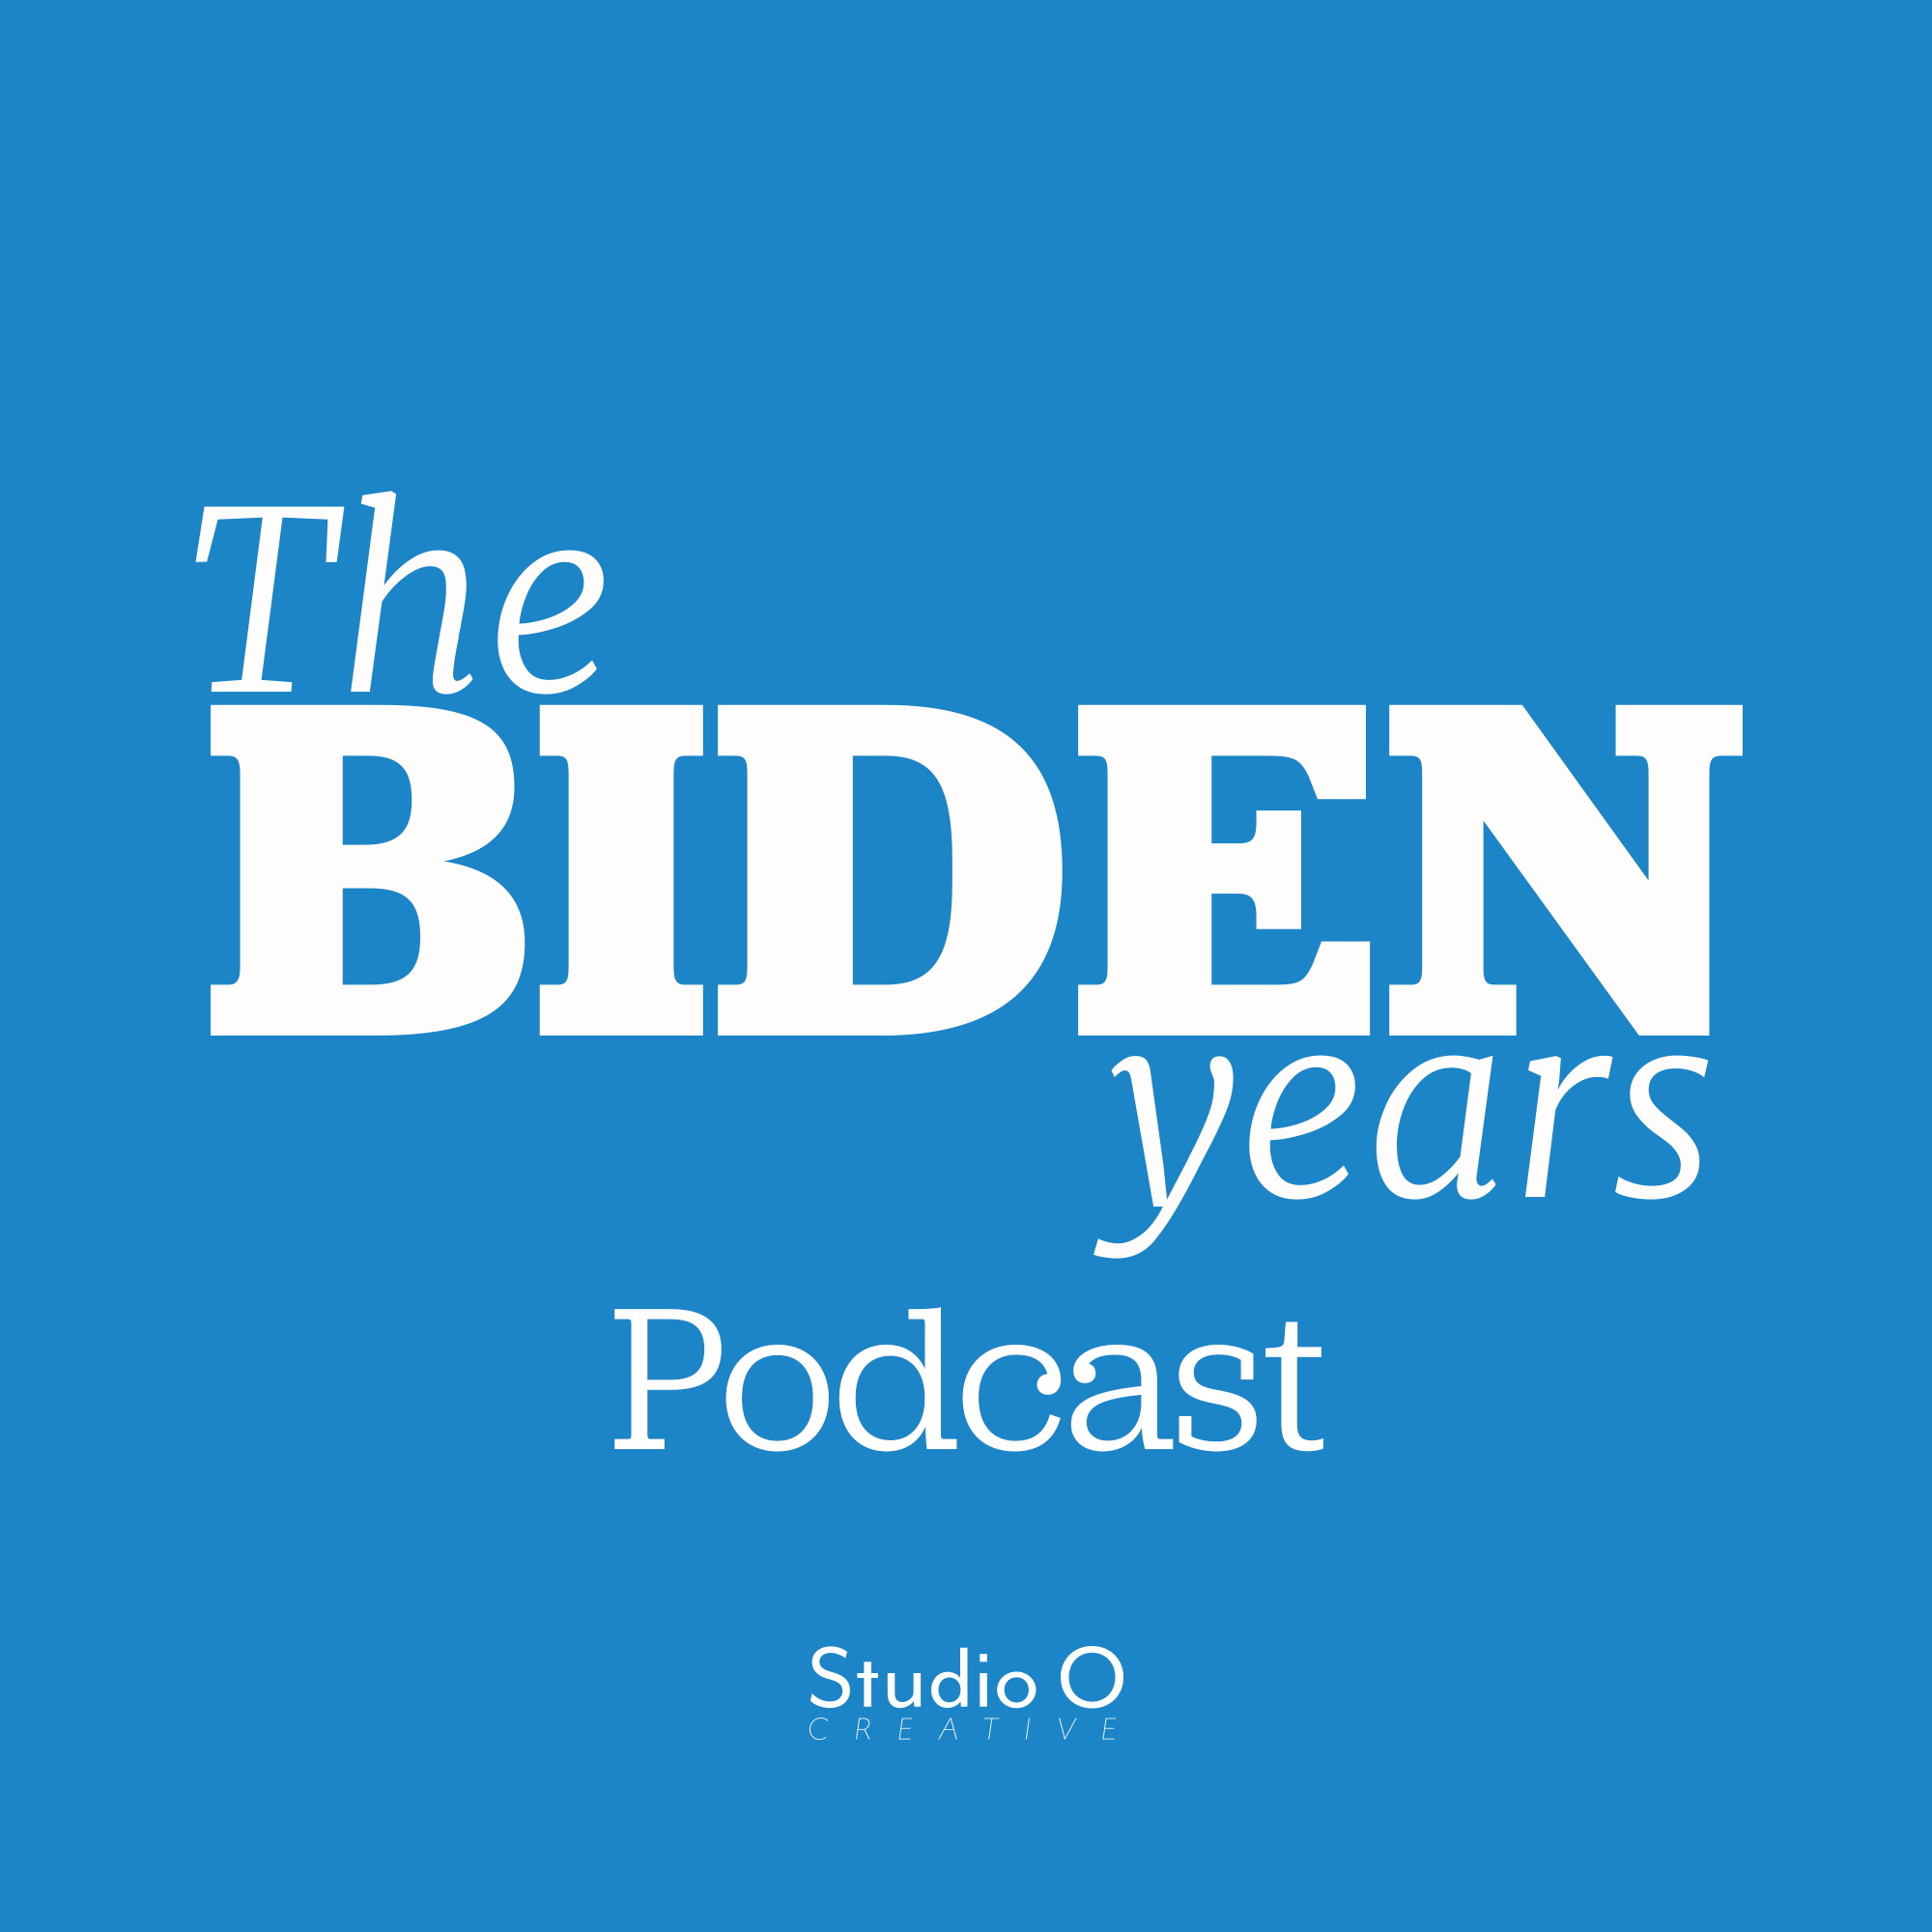 The Biden Years